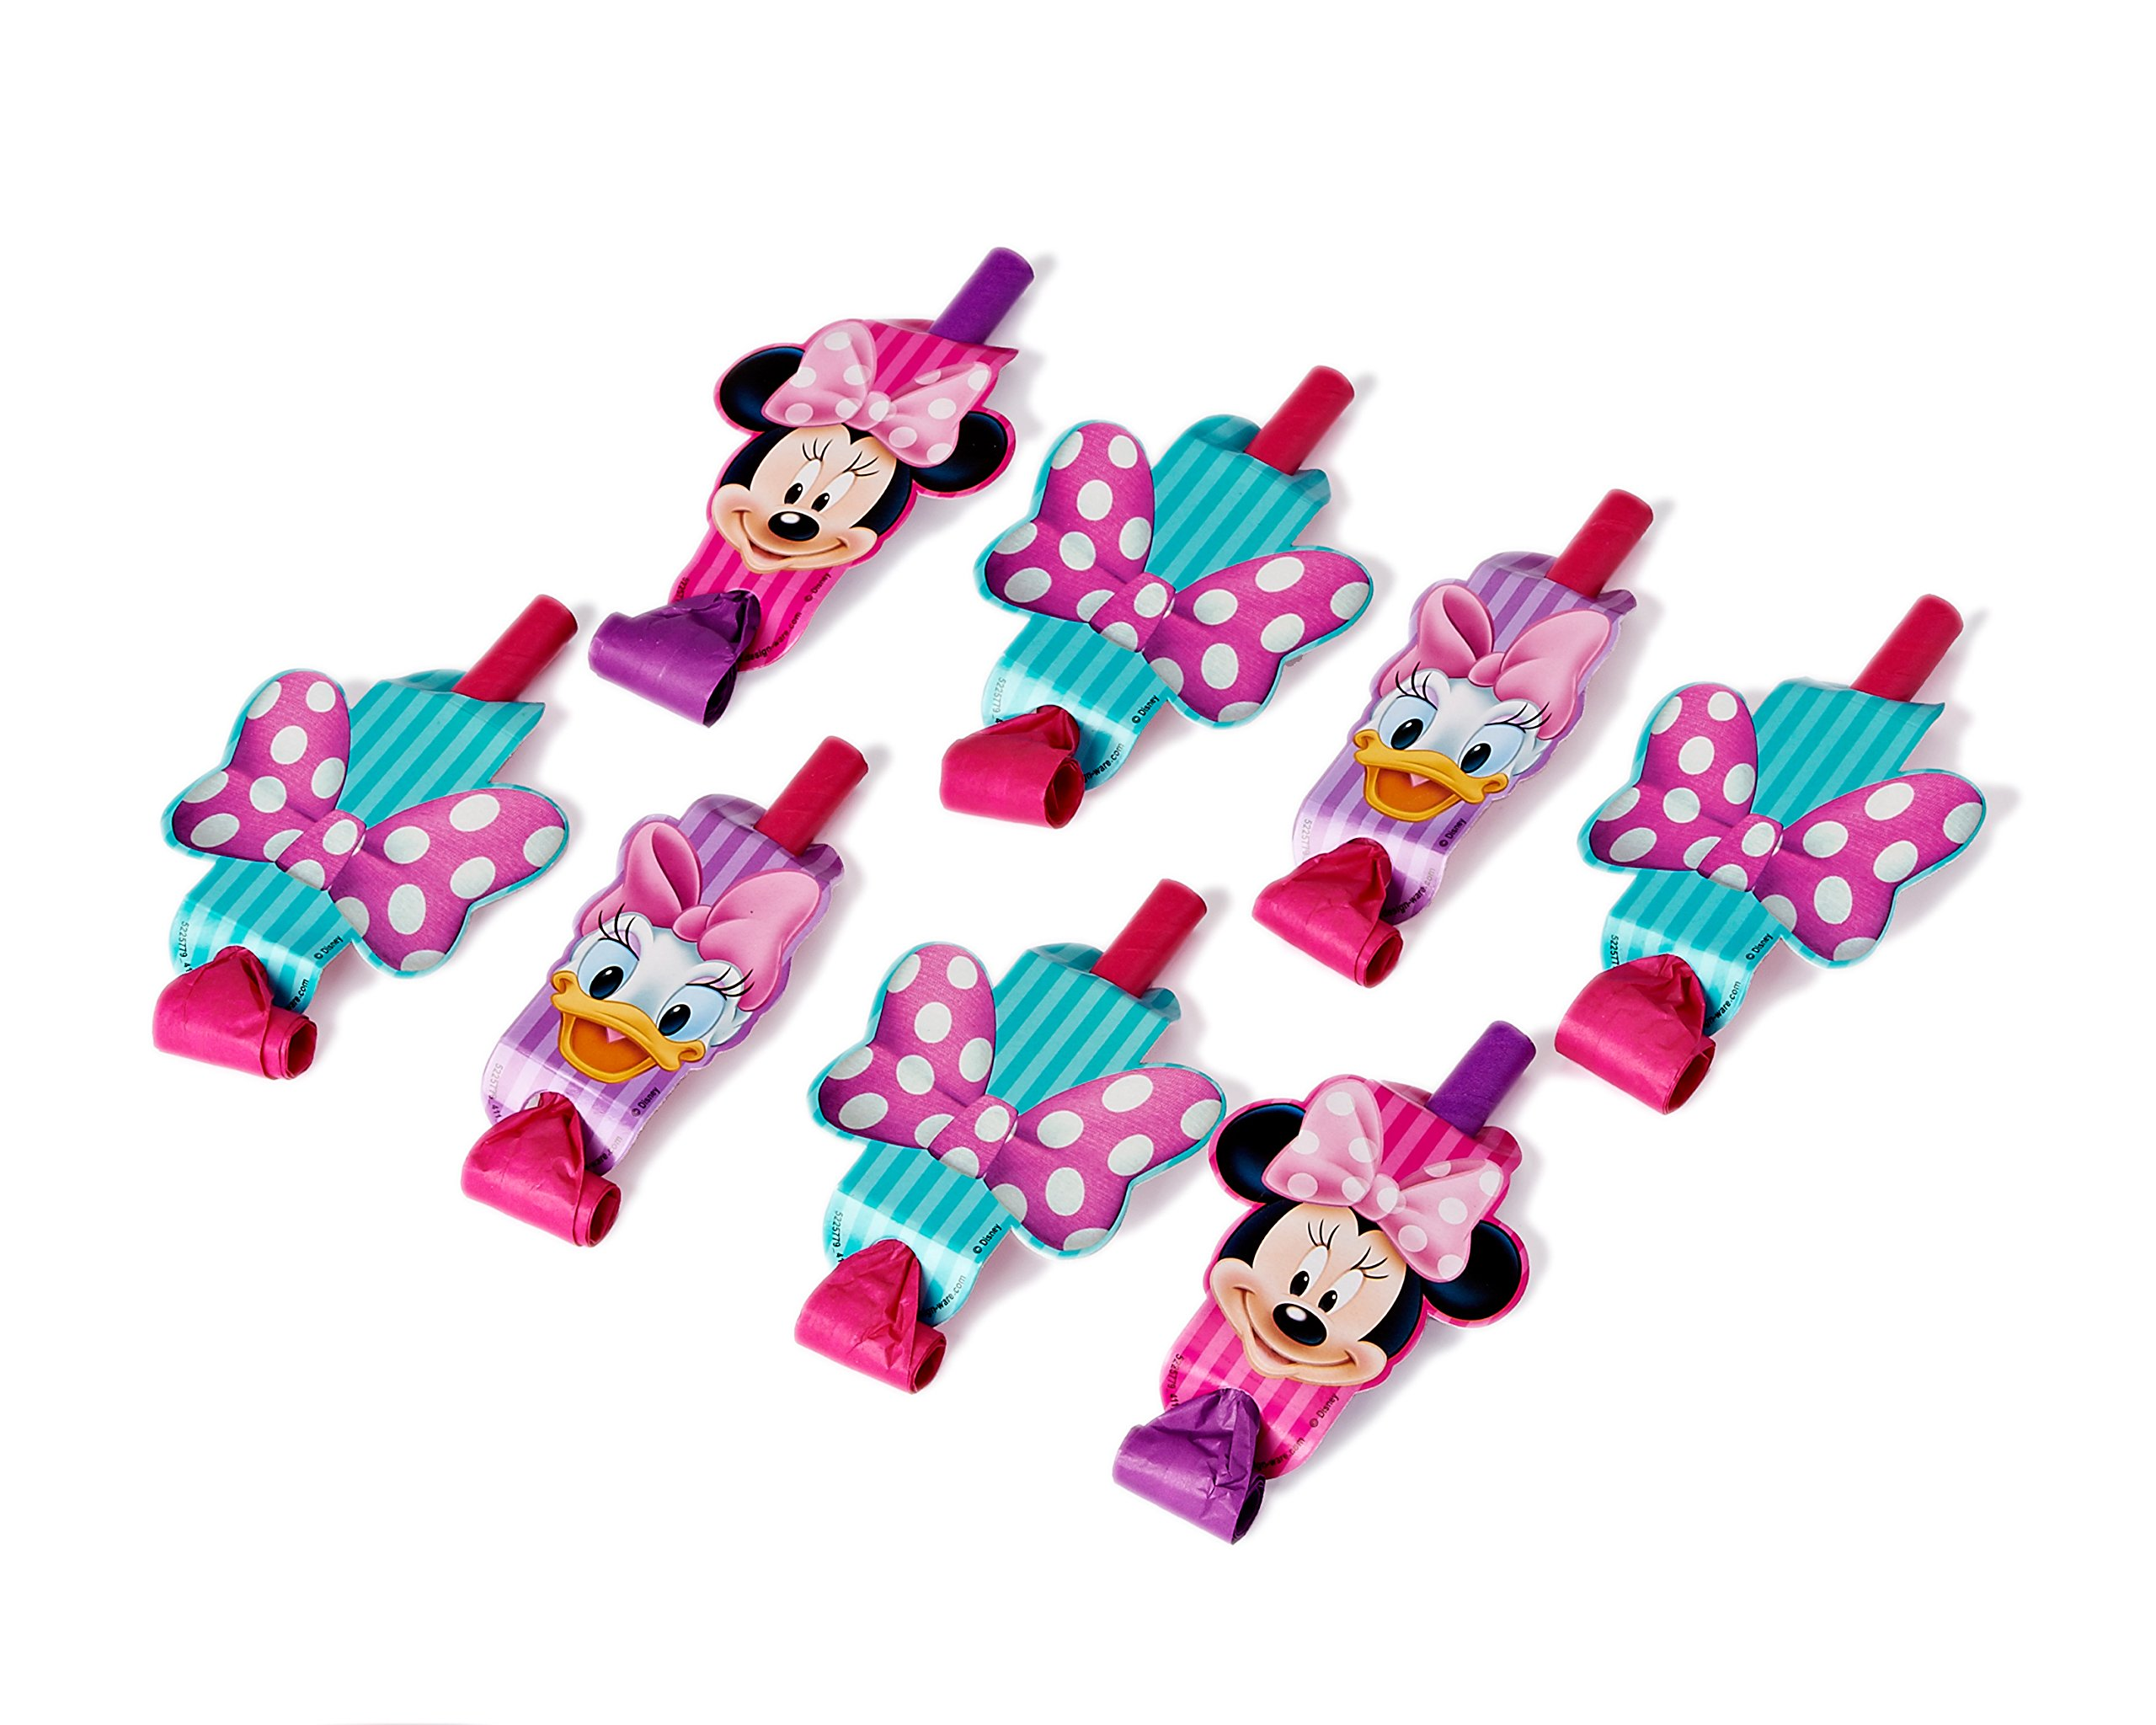 American Greetings Minnie Mouse Bowtique Party Blowers, Pack of 8, Party Supplies by American Greetings